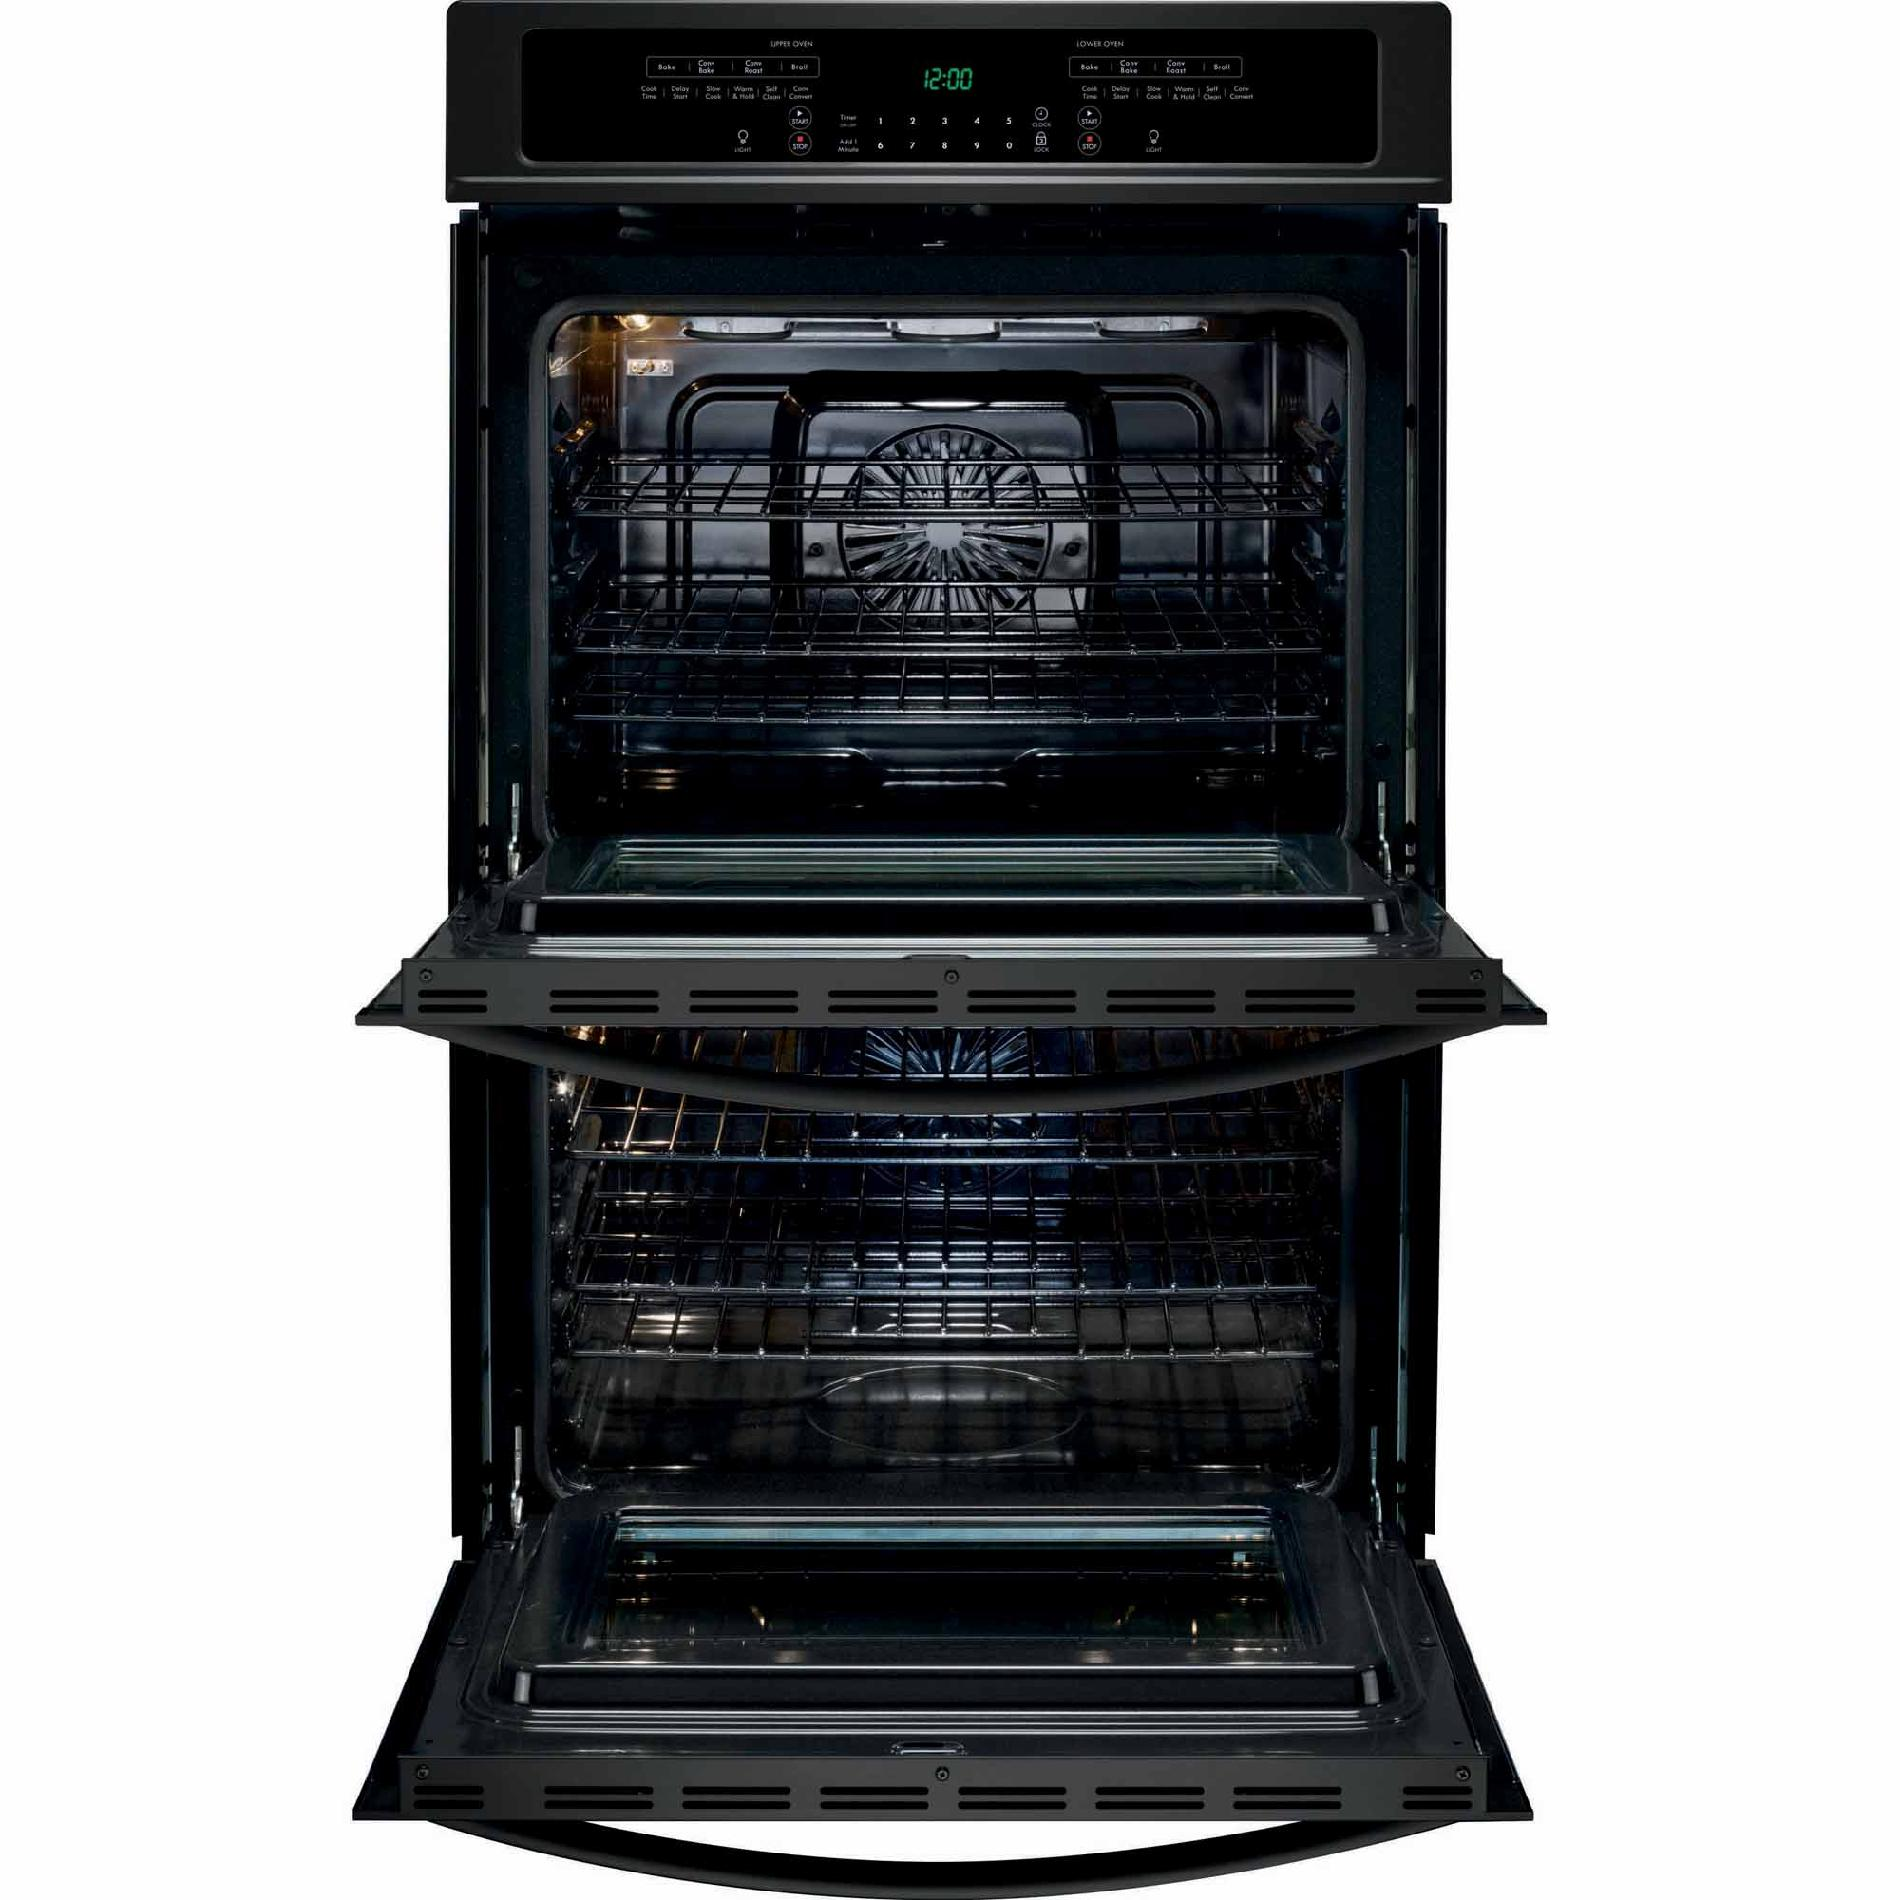 "Kenmore 49539 30"" Self-Clean Double Electric Wall Oven w/ Convection - Black"